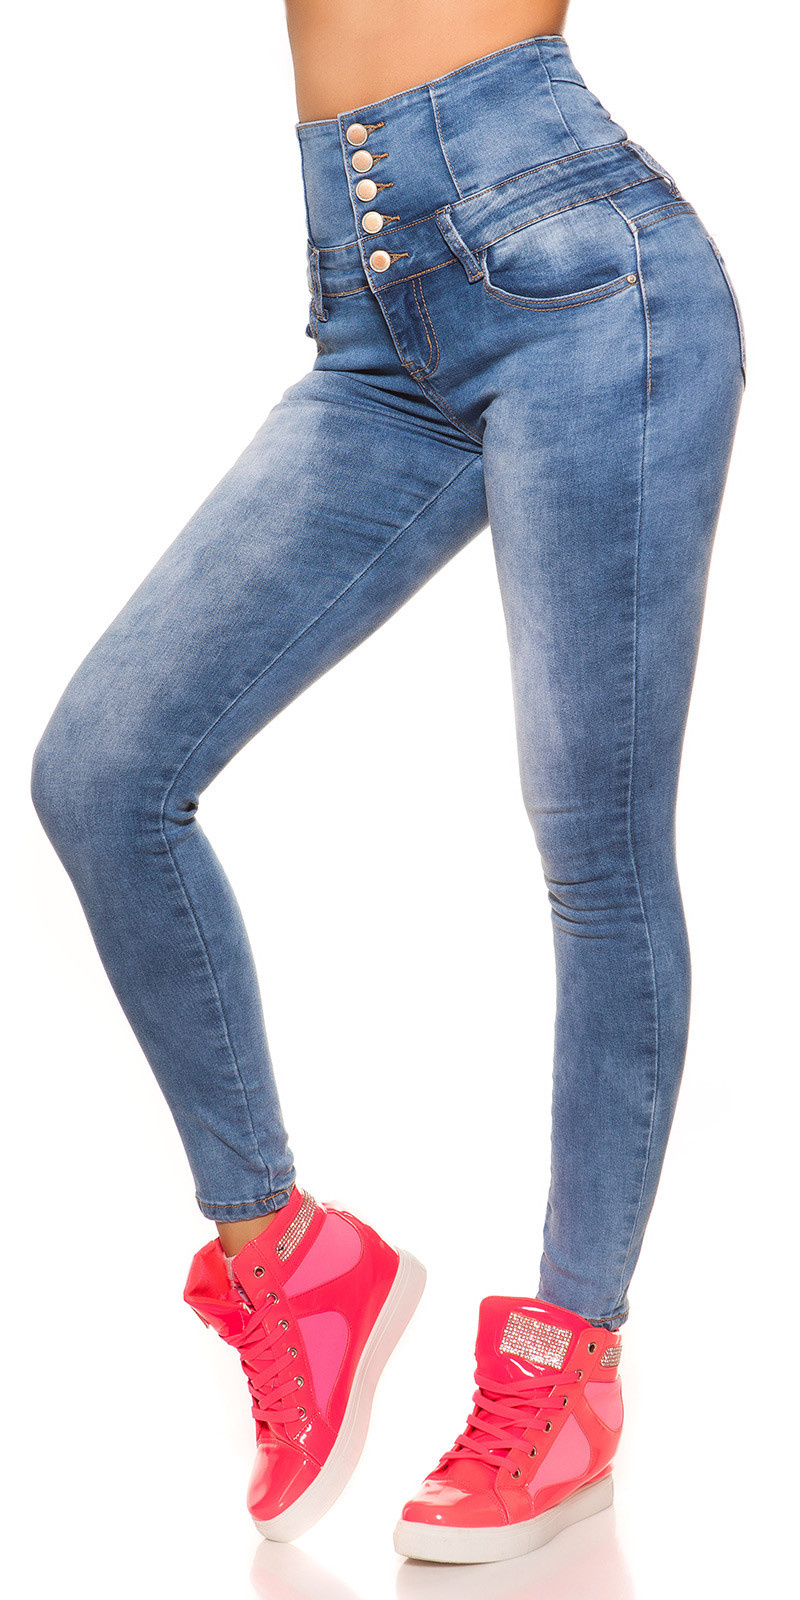 Sexy High Waist Skinny Jeans Jeansblue